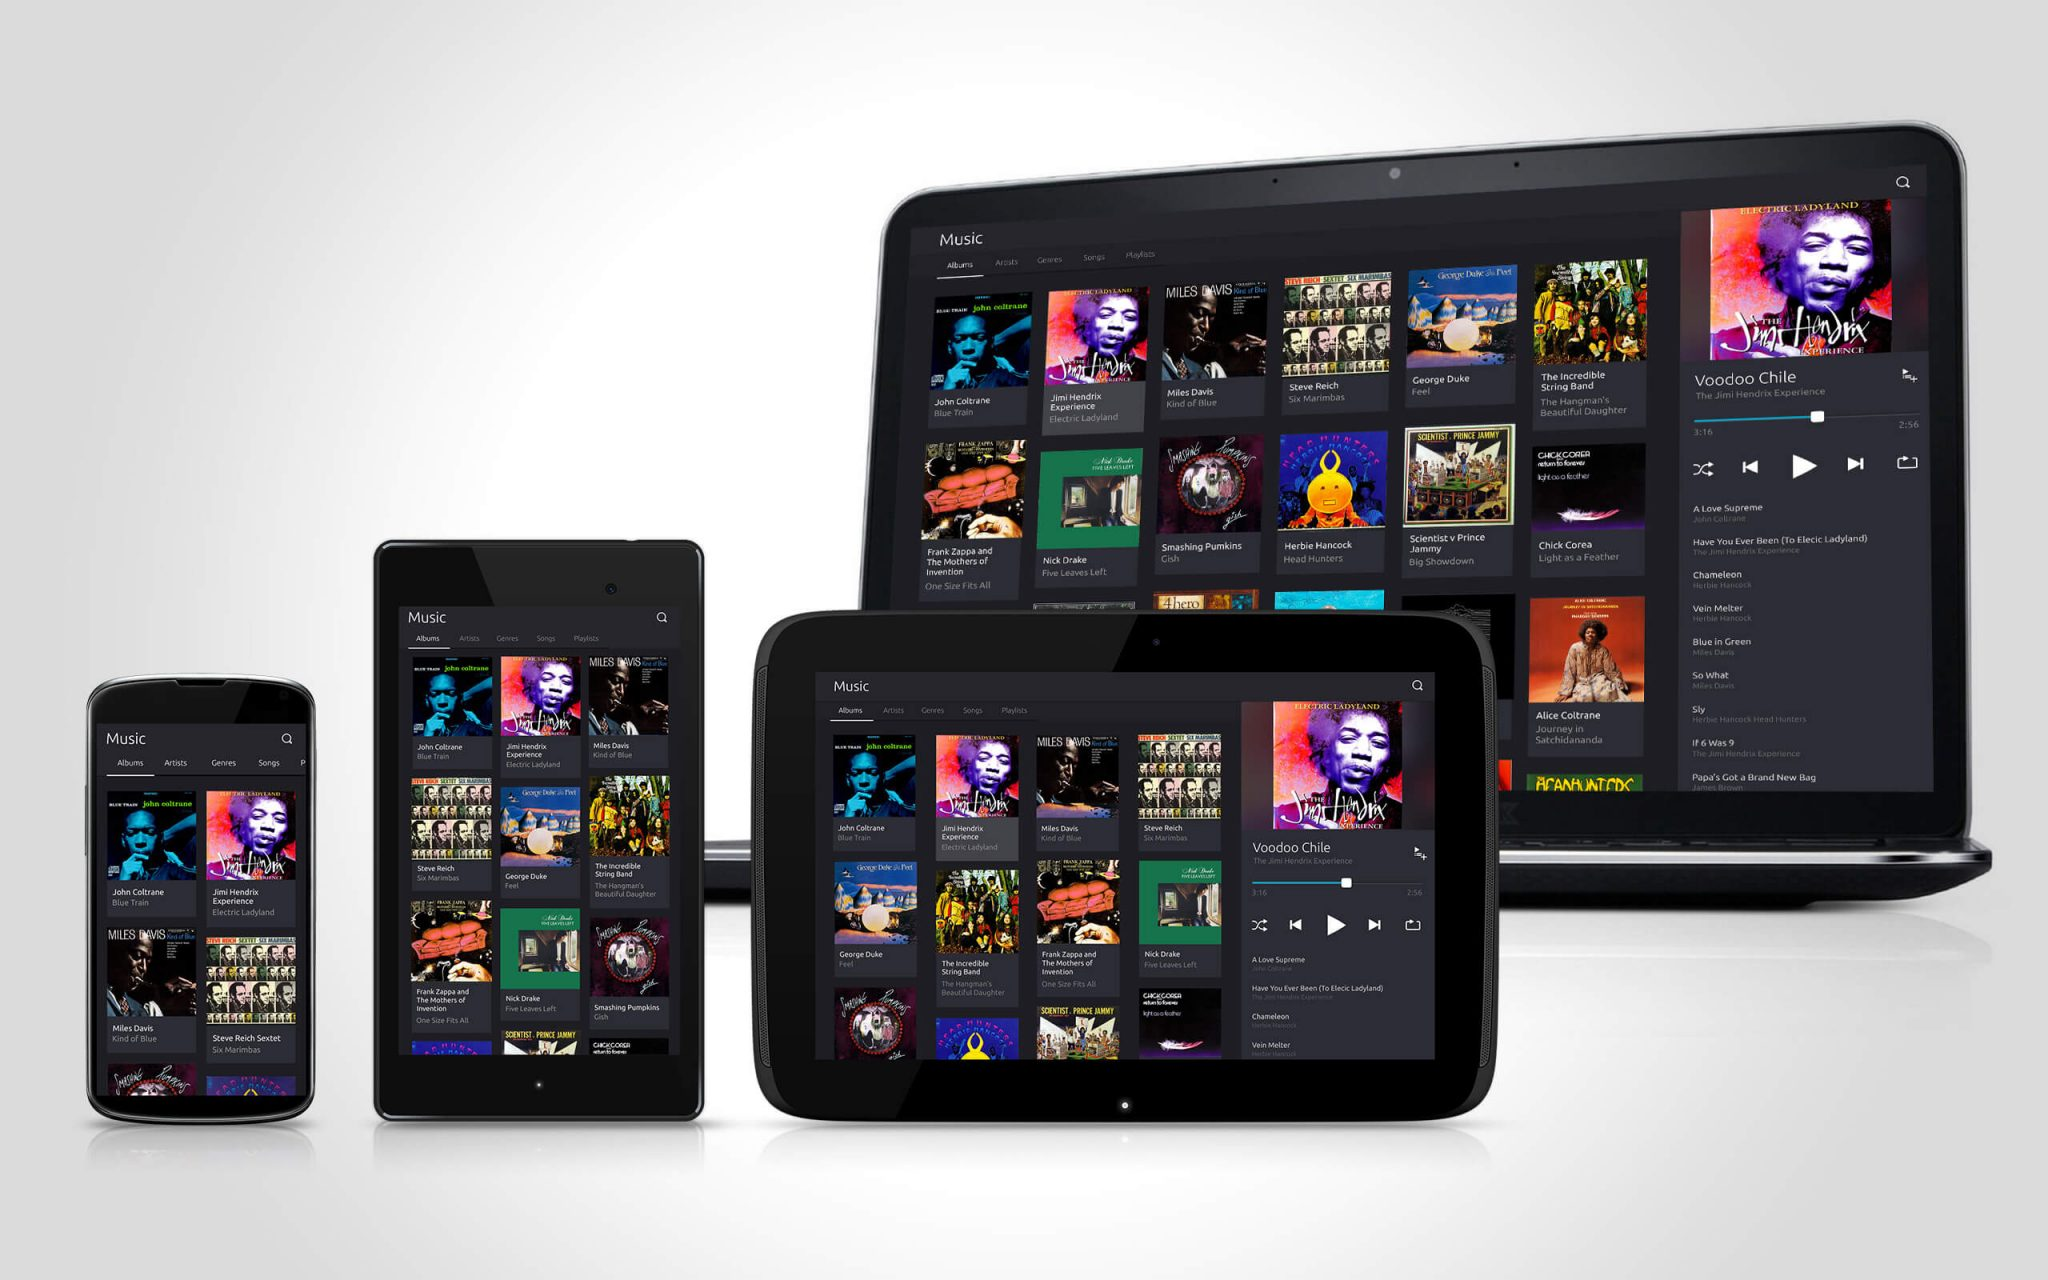 android apps in ubuntu tech justice